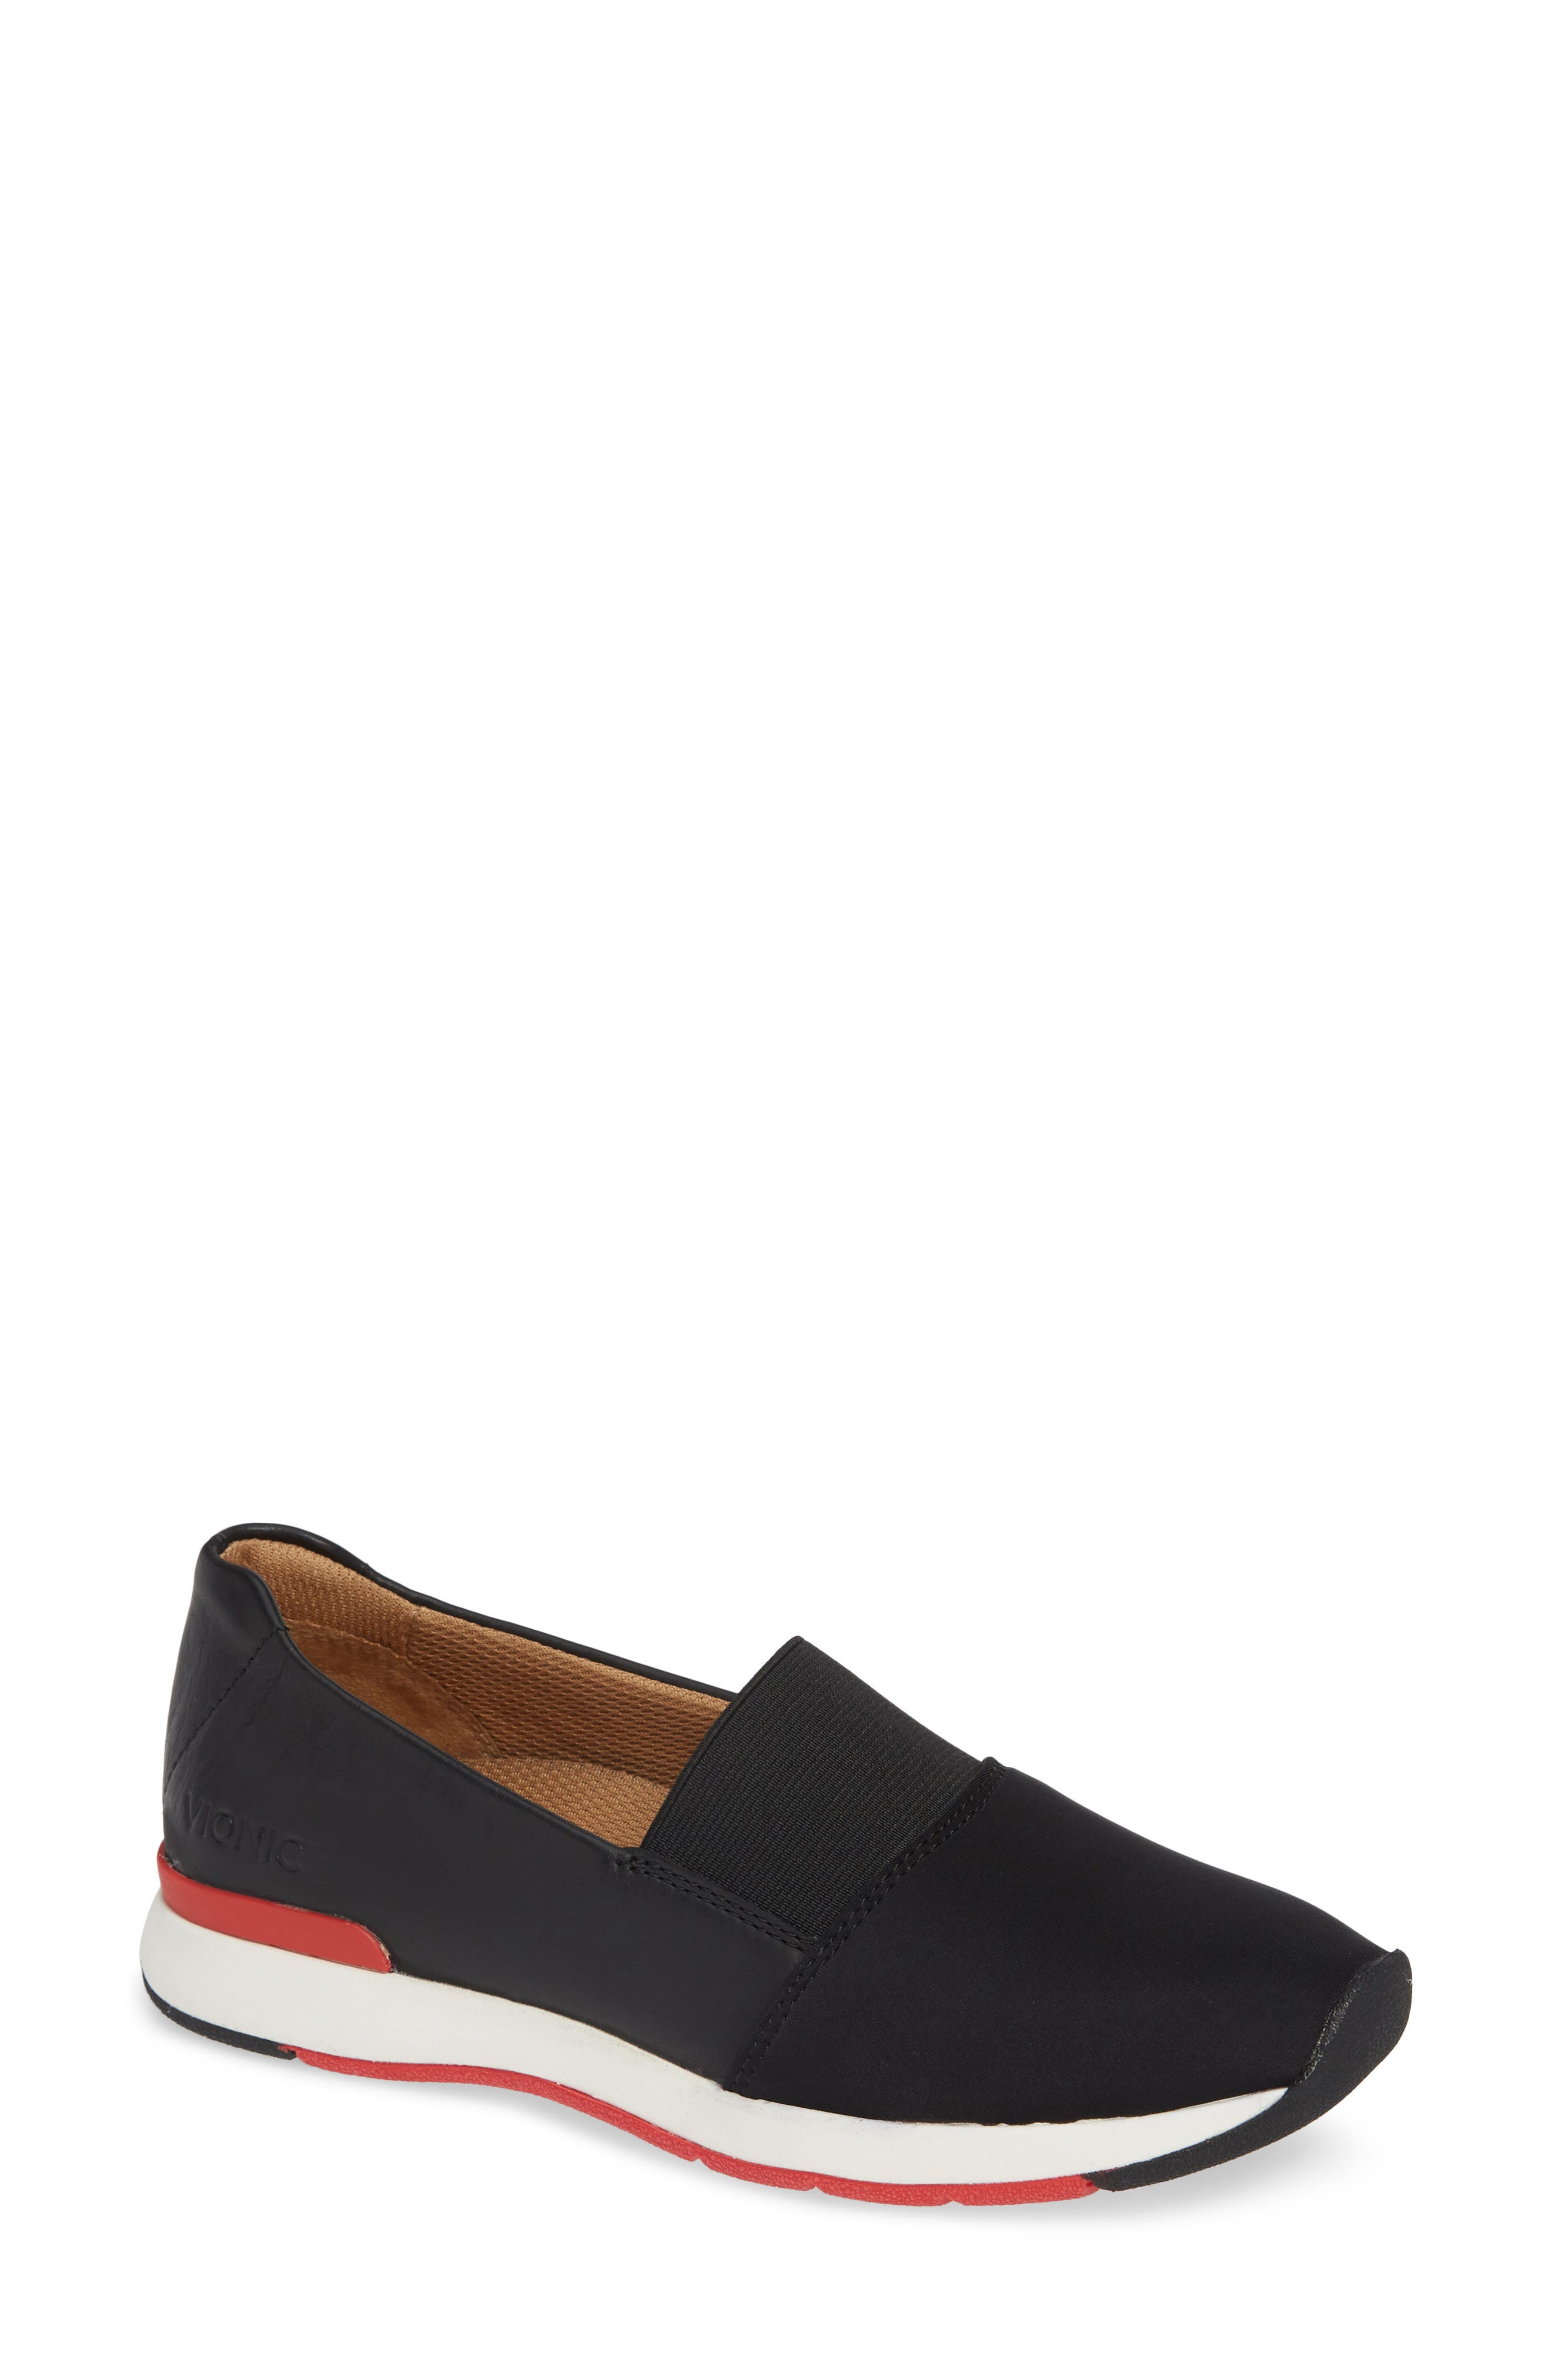 Cameo Slip-On Shoe,                         Main,                         color, BLACK LEATHER NEOPRENE